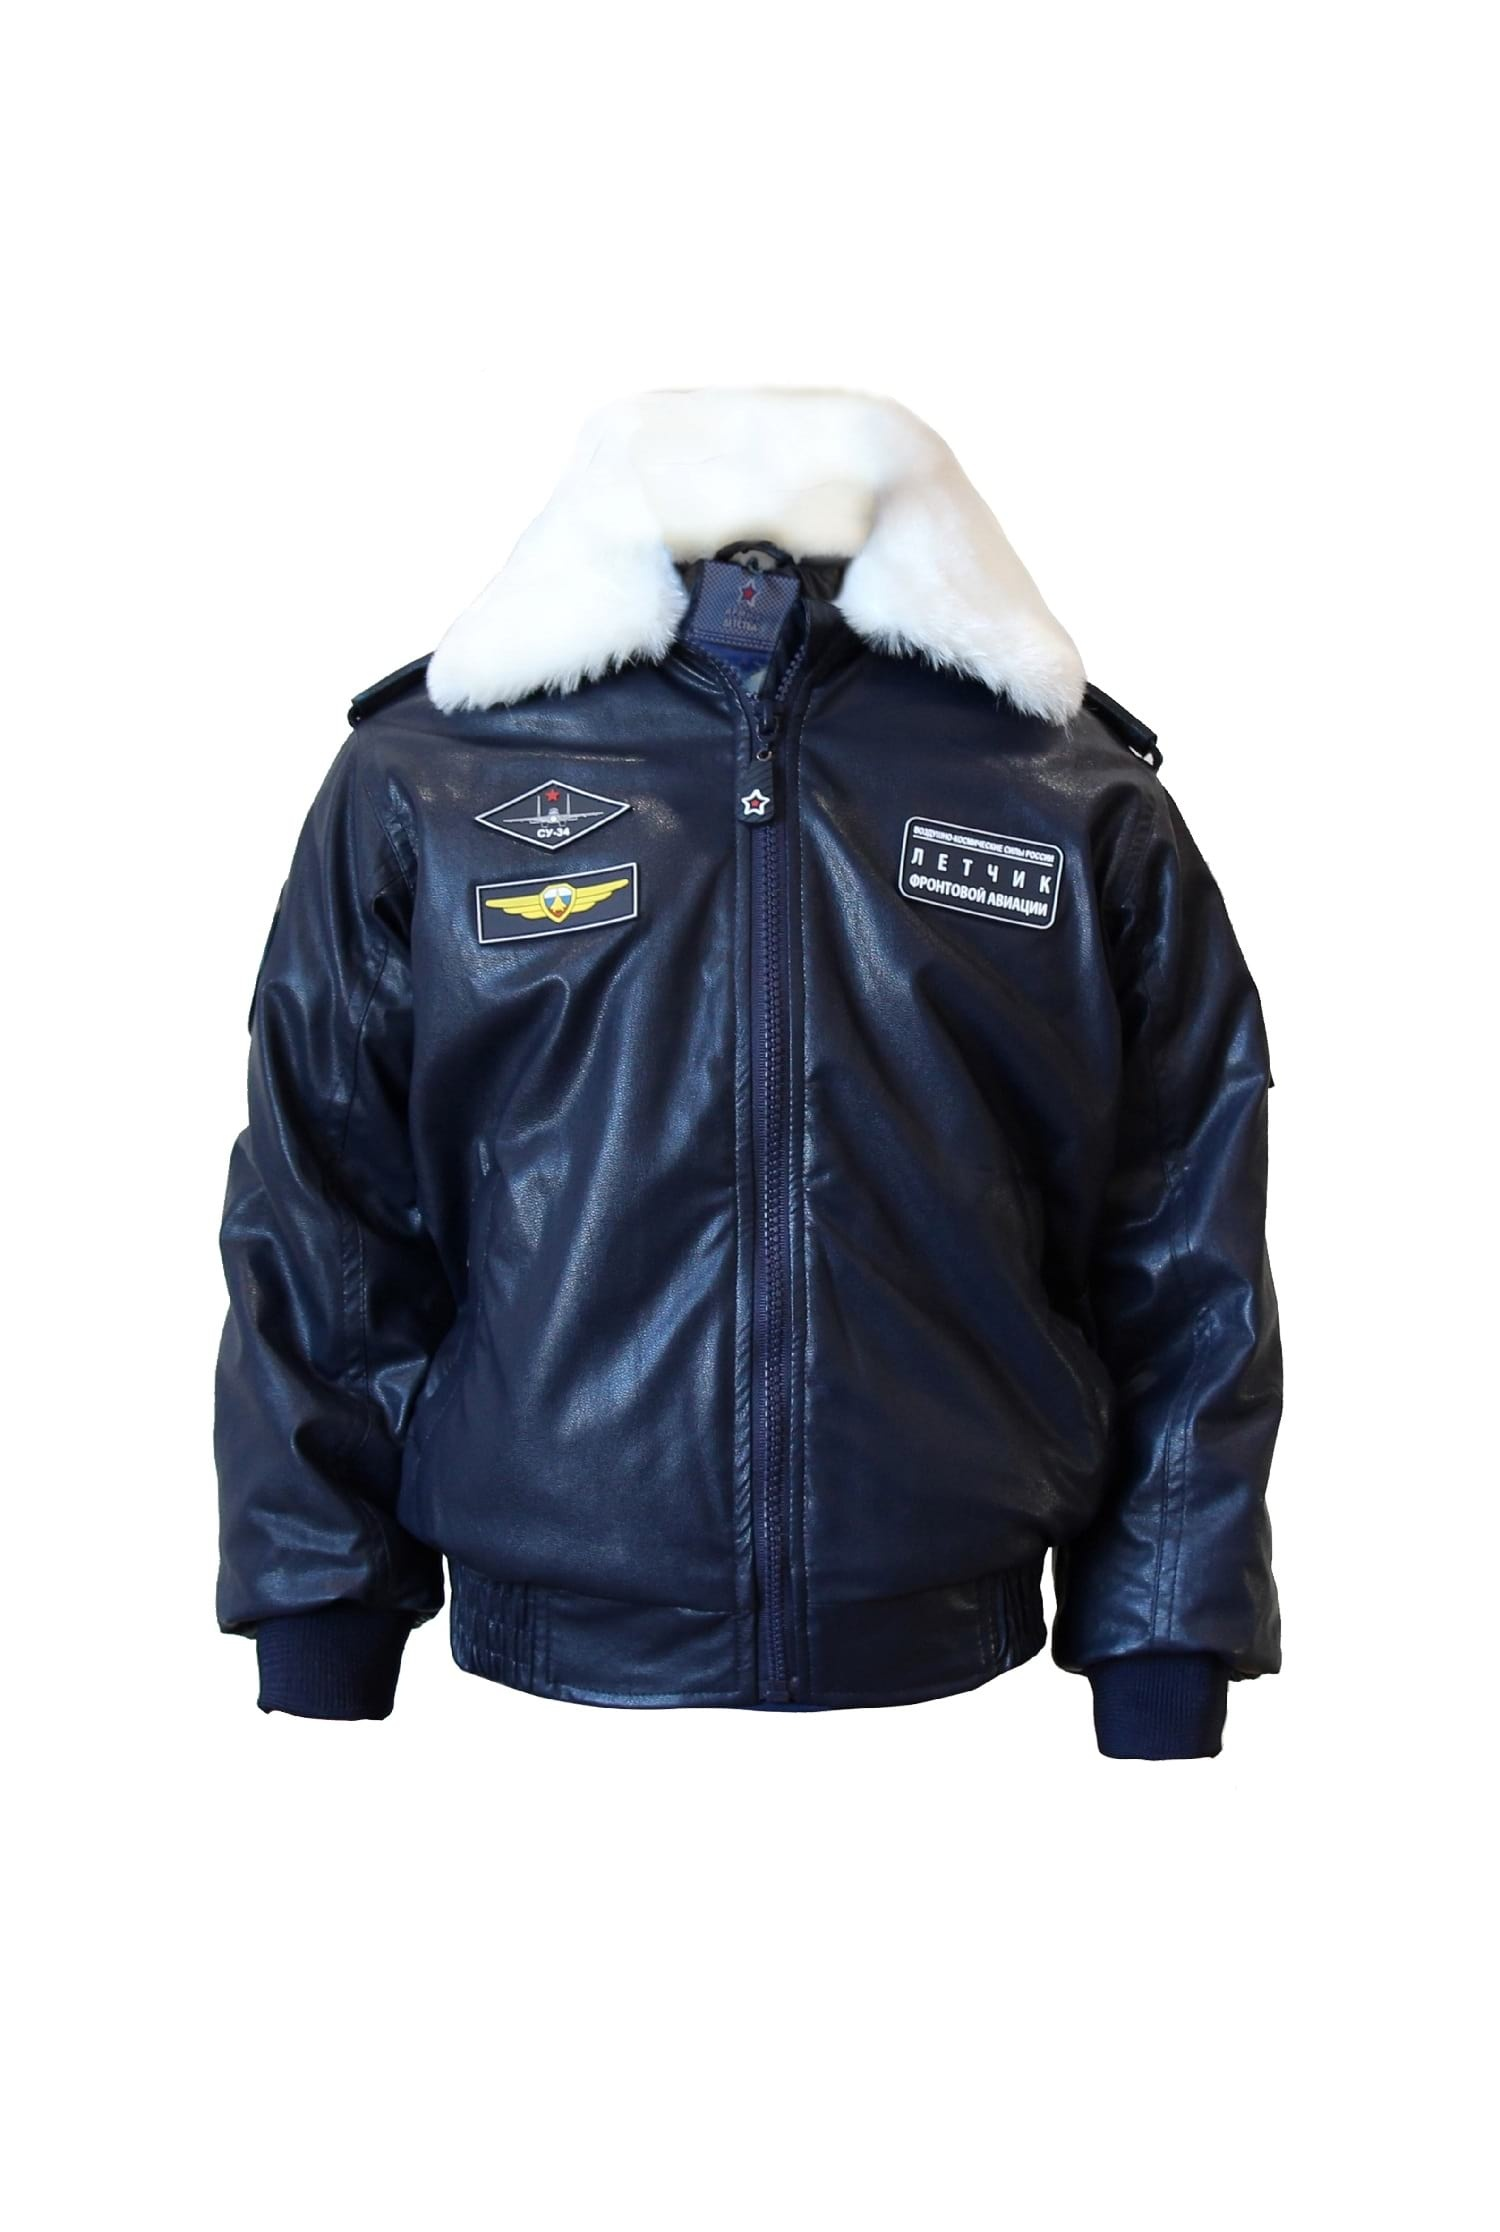 Children's Jacket «Sky» (leatherette) SU-34Верхняя одежда<br>This model SU-34 for children made from leatherette with the fake fur decoration and textile lining. Temperature conditions 0…10 °С<br><br>Цвет: Темно-синий<br>Размер: 134<br>Пол: Детям